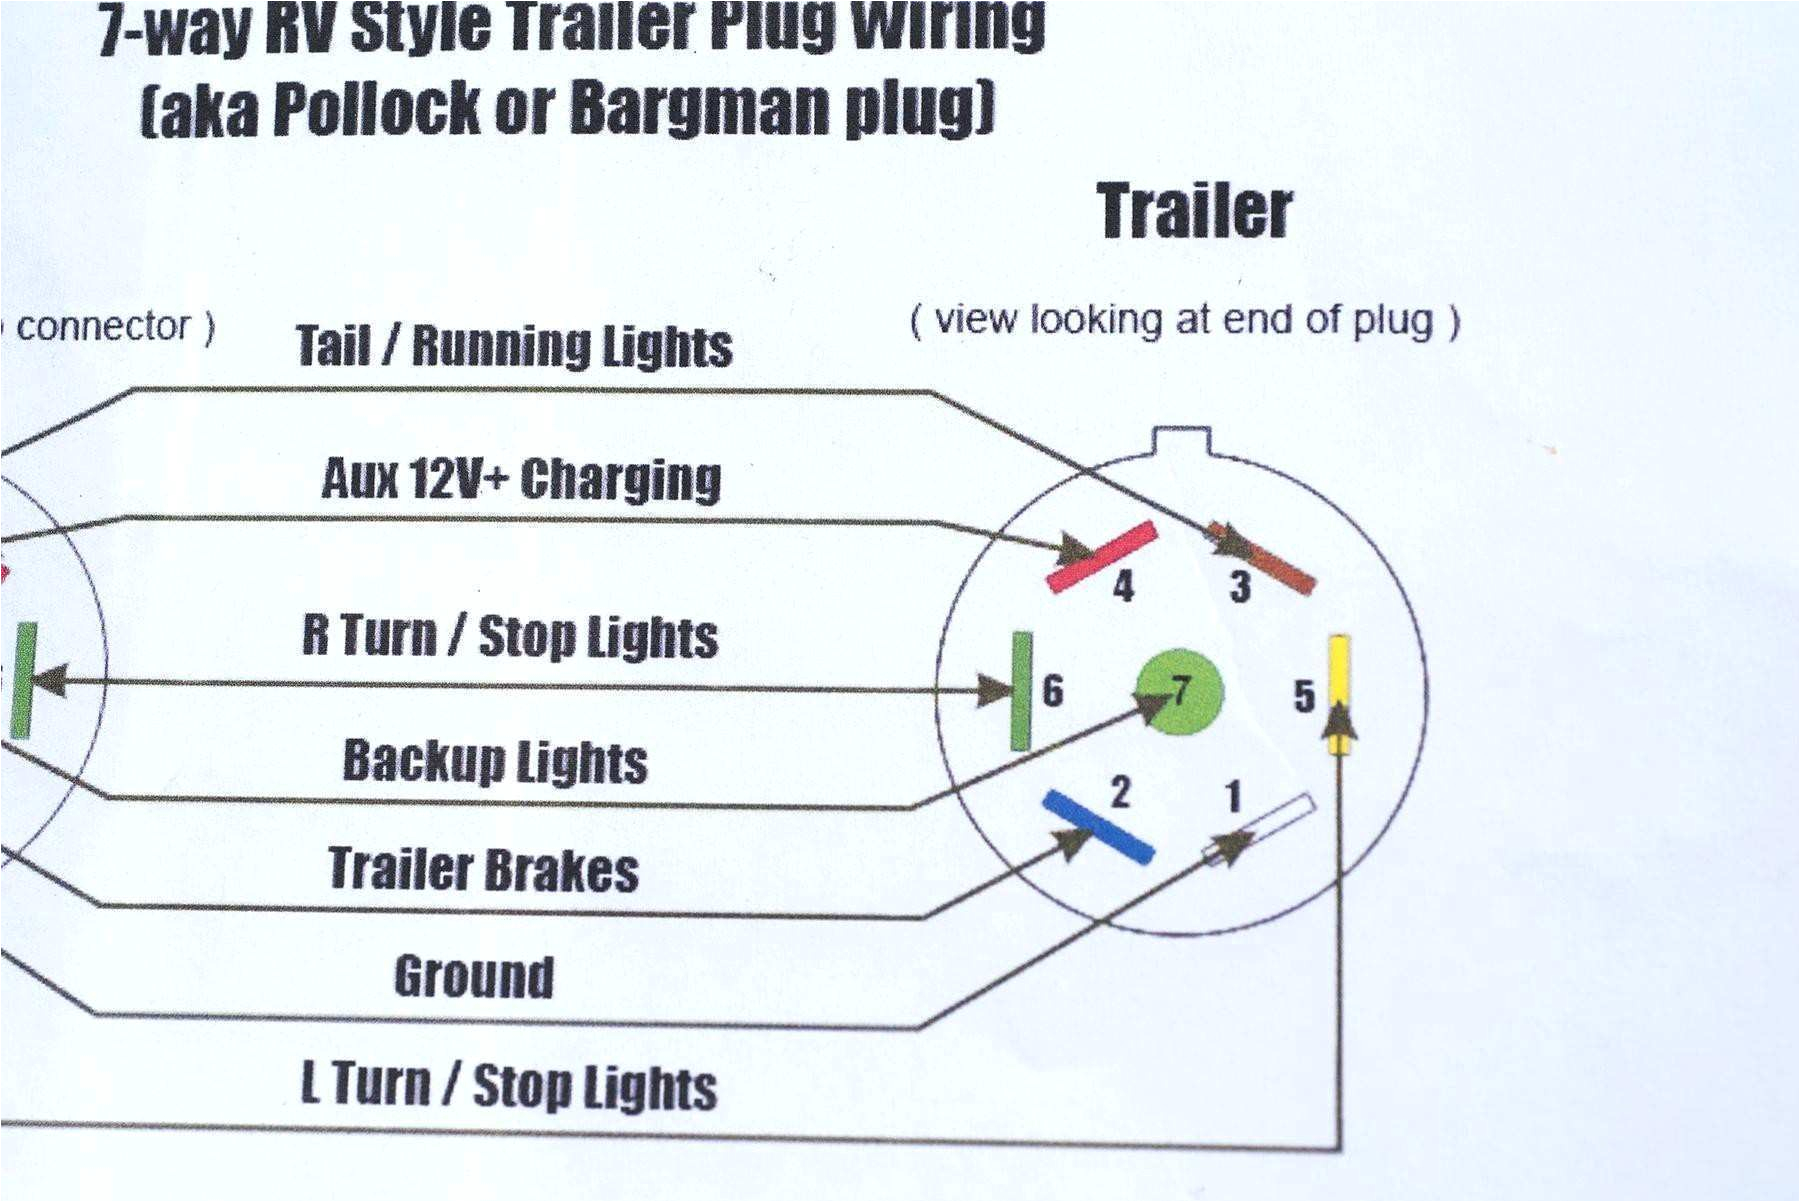 wiring diagram for a 7 way trailer plug get free image about wiring dodge ram trailer wiring harness diagram get free image about wiring